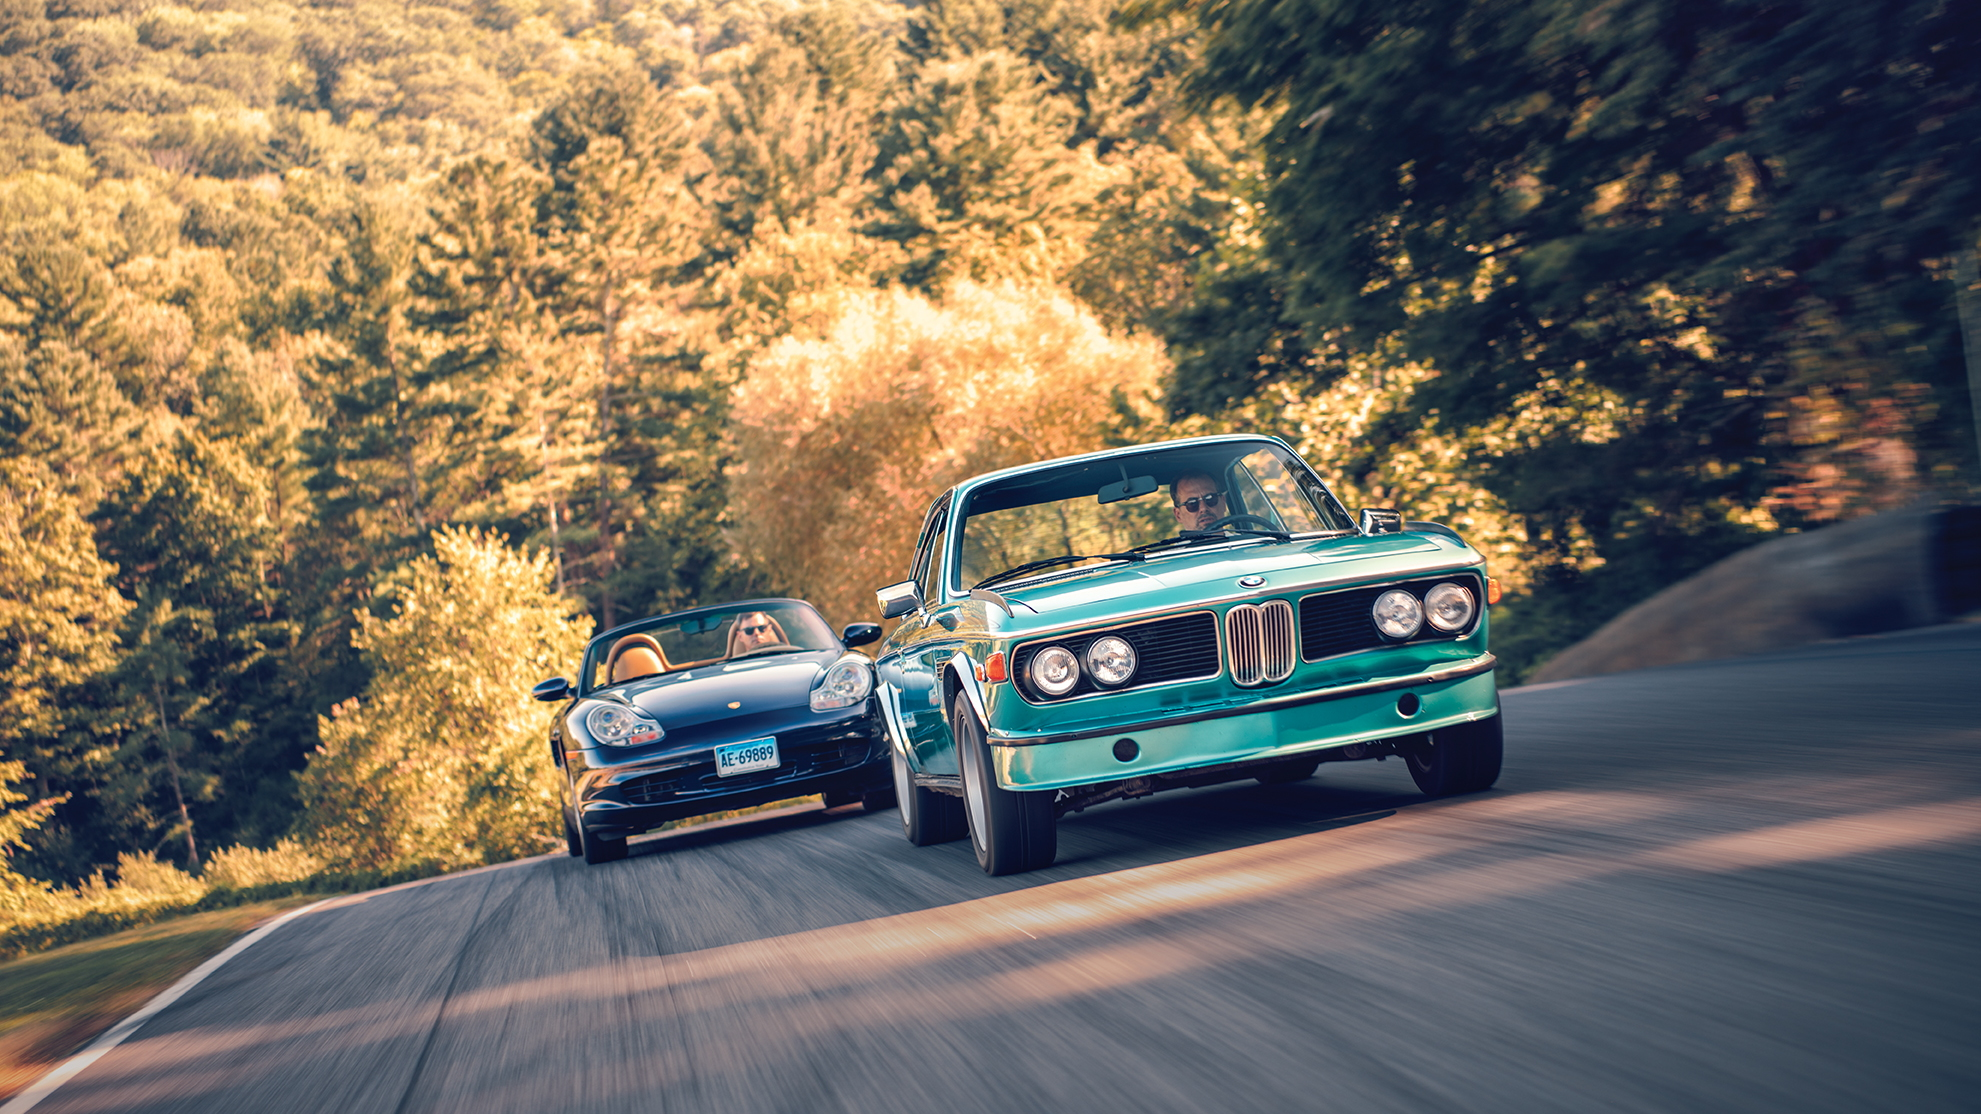 1973 BMW 3.0CSL and 2003 Porsche Boxster S, photo by DW Burnett